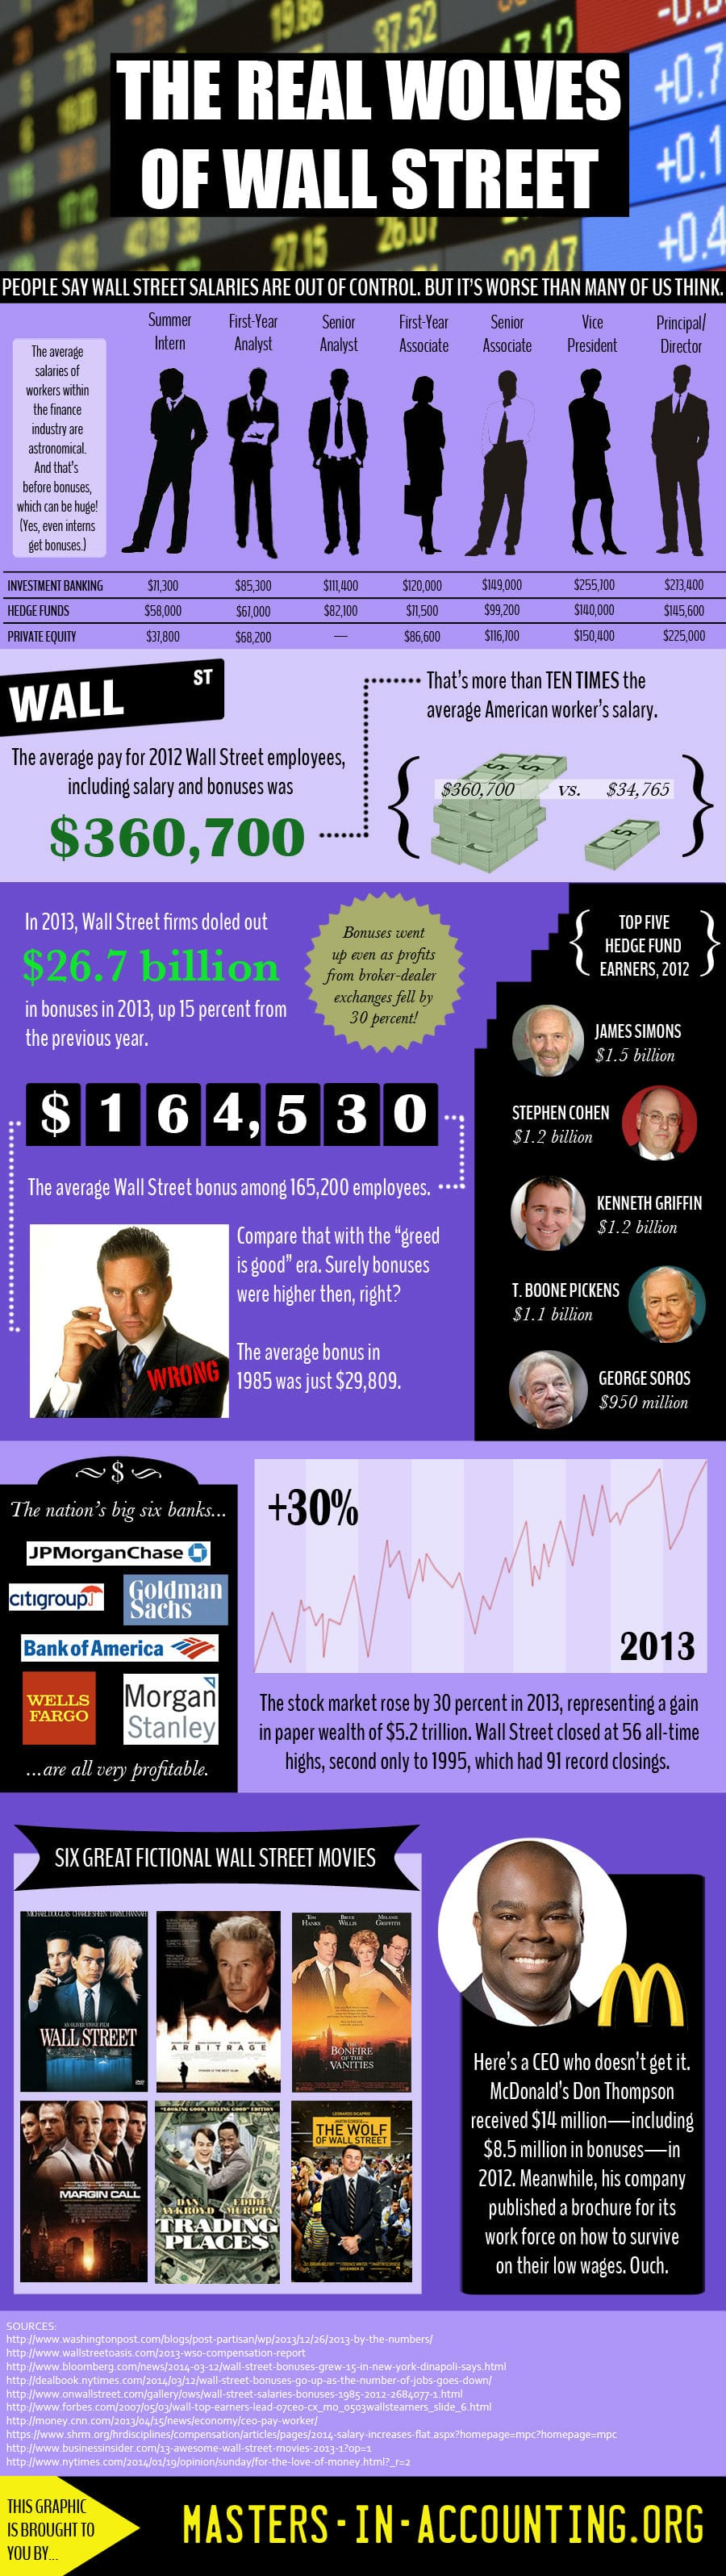 Wall Street Wolves [Infographic]